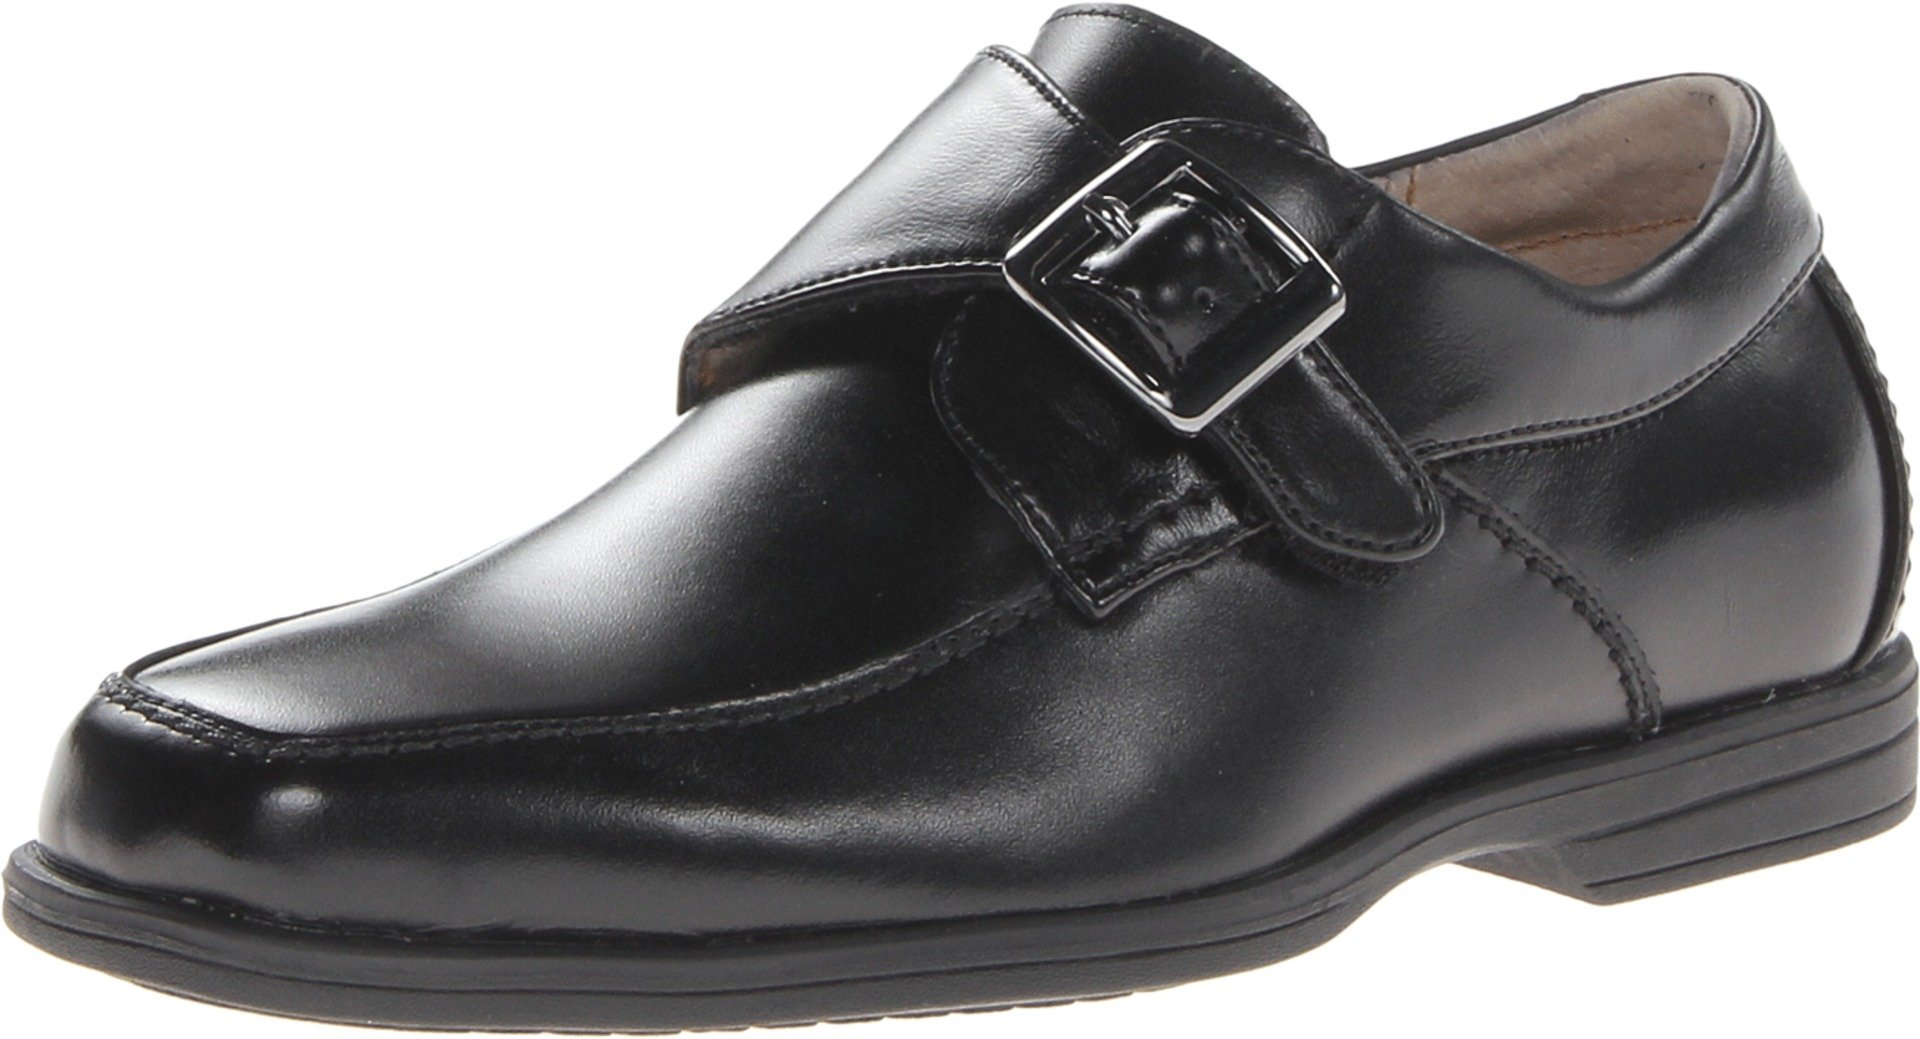 Florsheim Kids  Reveal Monk JR Uniform Loafer (Toddler/Little Kid/Big Kid),Black,6.5 M US Big Kid